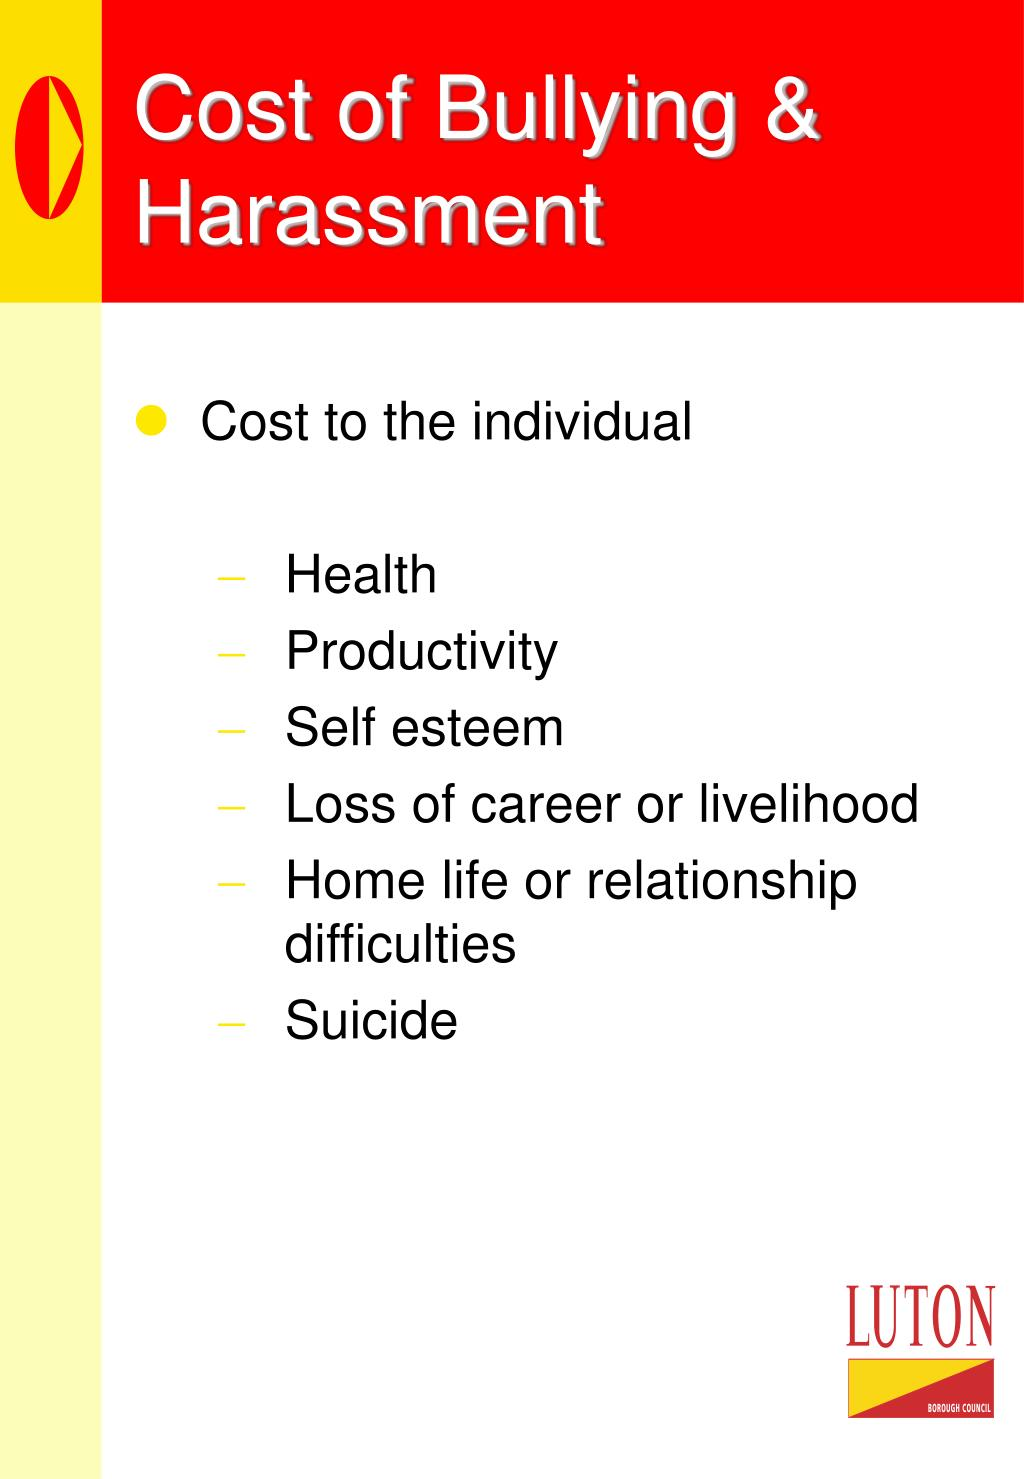 Cost of Bullying & Harassment